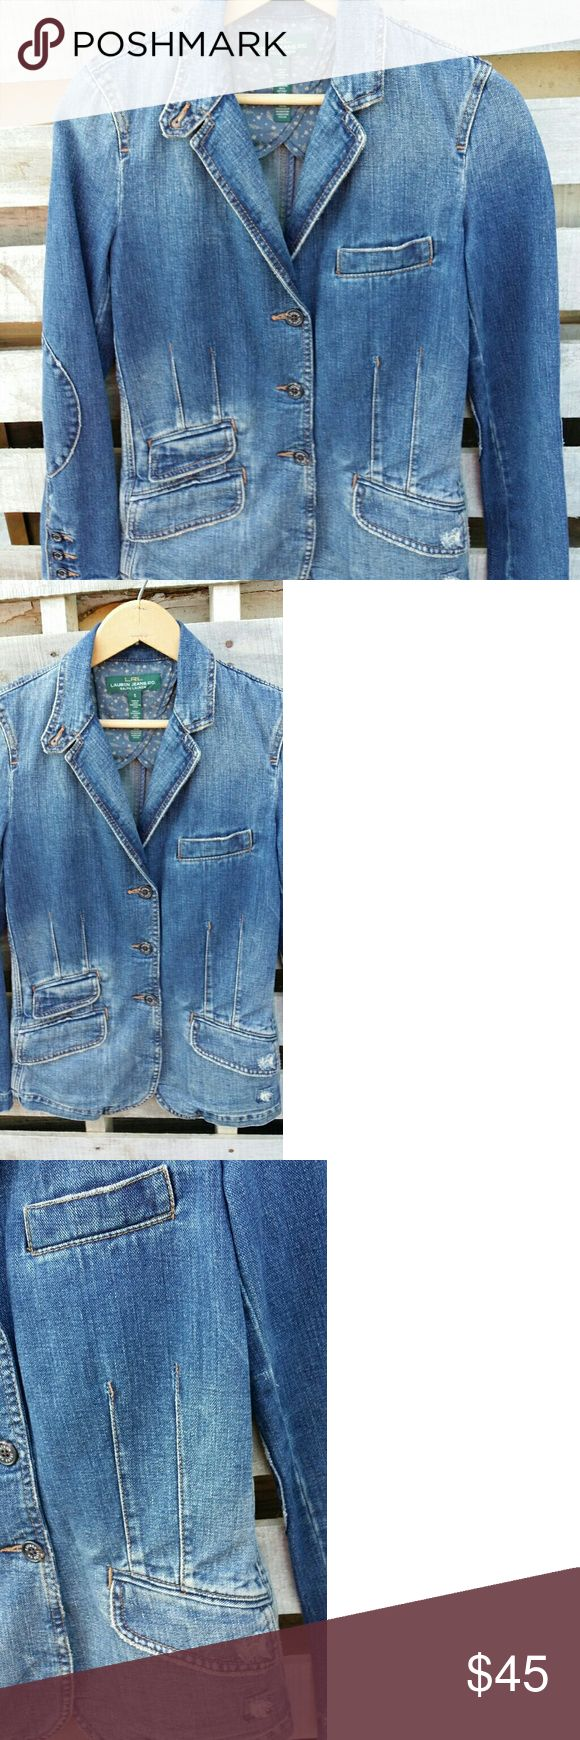 """Ralph Lauren-LRL-Lauren Jean's Co. Denim Blazer """"Like New"""" Awesome distressed LRL Ralph Lauren 100 % denim fitted blazer. 3 button front. 4 button cuffs with patched elbow sleeves. Front flap and Ticket pockets. Left breast welt pocket. Back kick out pleat. Ralph Lauren Jackets & Coats Blazers"""